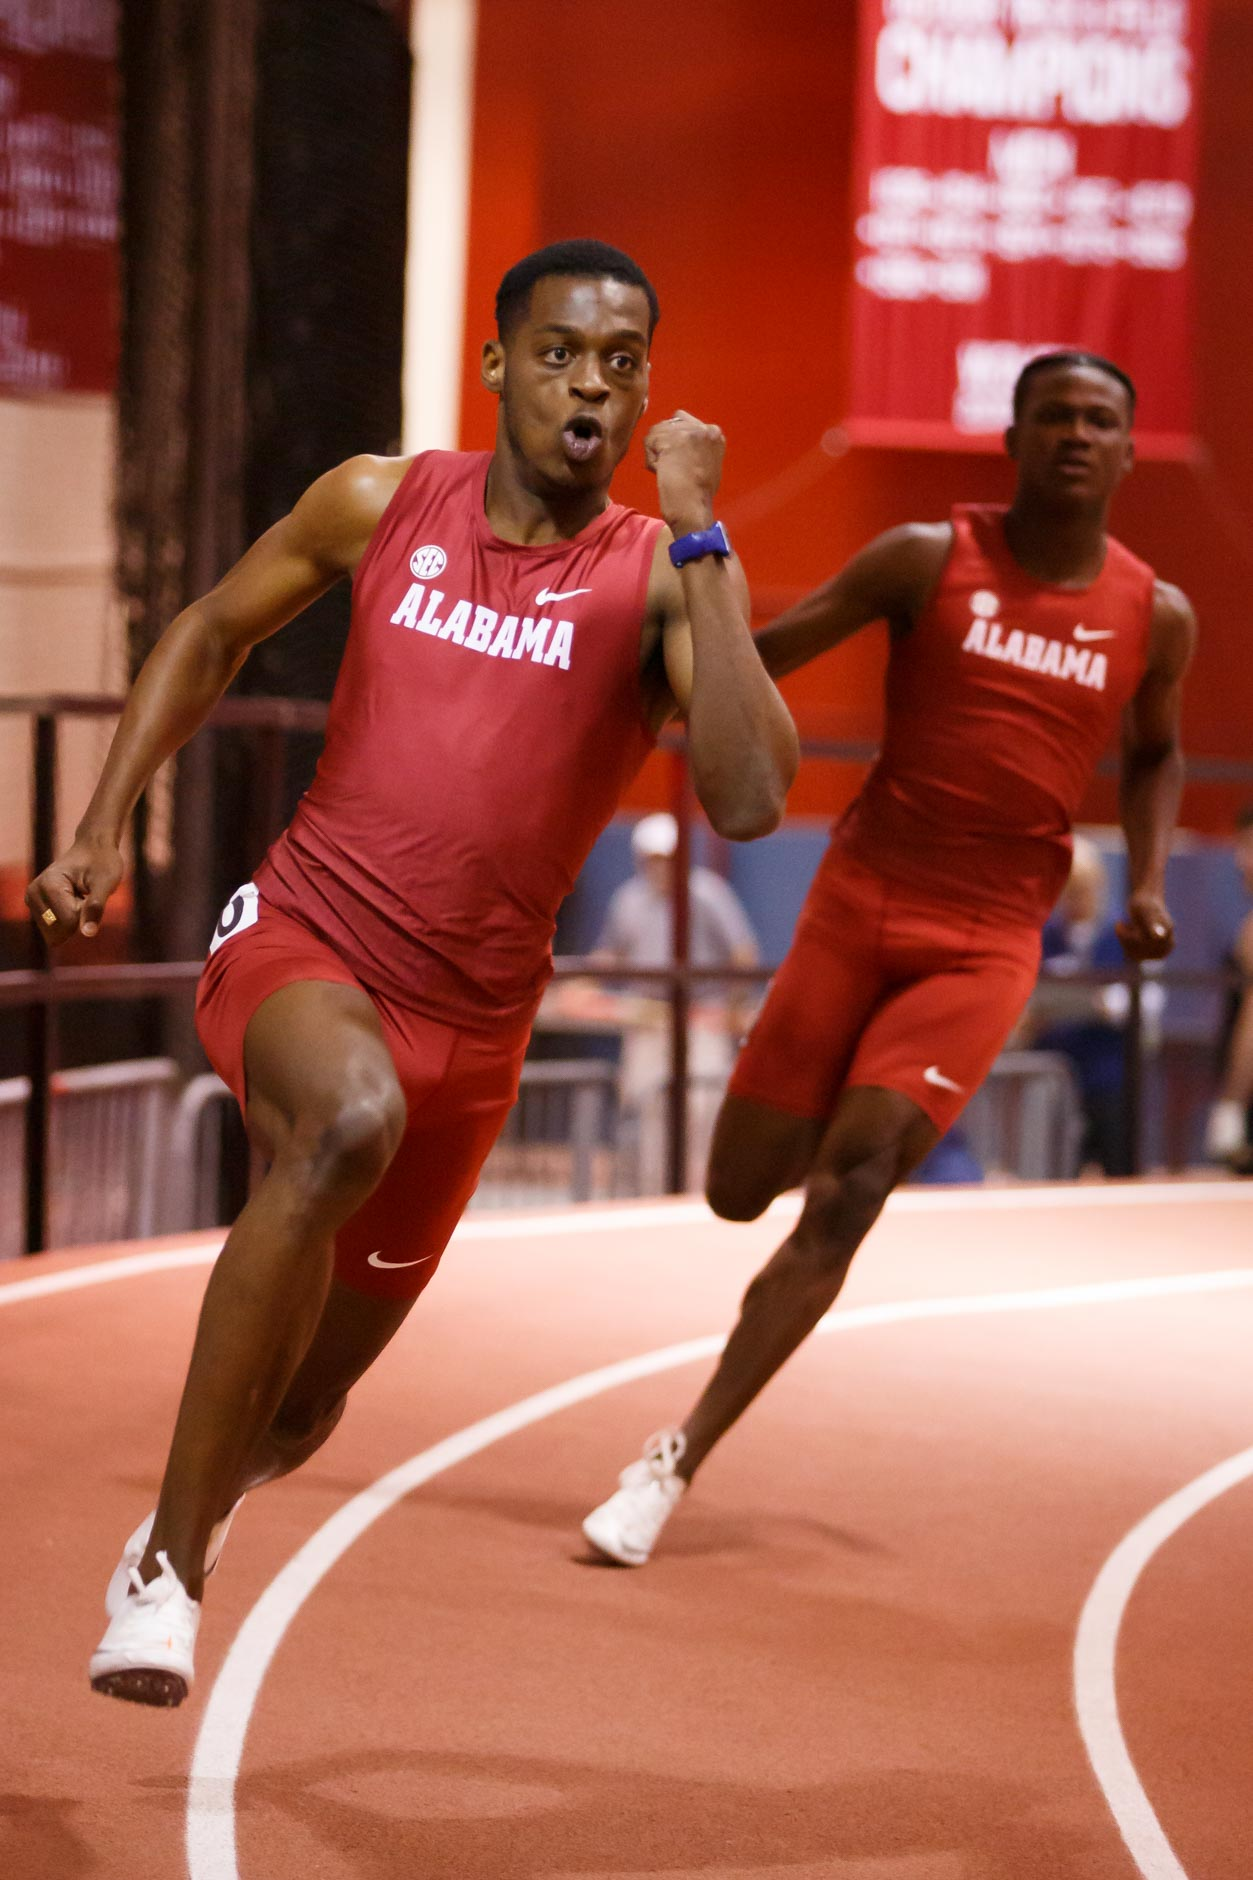 Alabama's Joshua St. Clair competes in the 200 meter dash during the Indiana University Relays in Bloomington, Indiana on Friday, Jan. 31, 2020. (Photo by James Brosher)